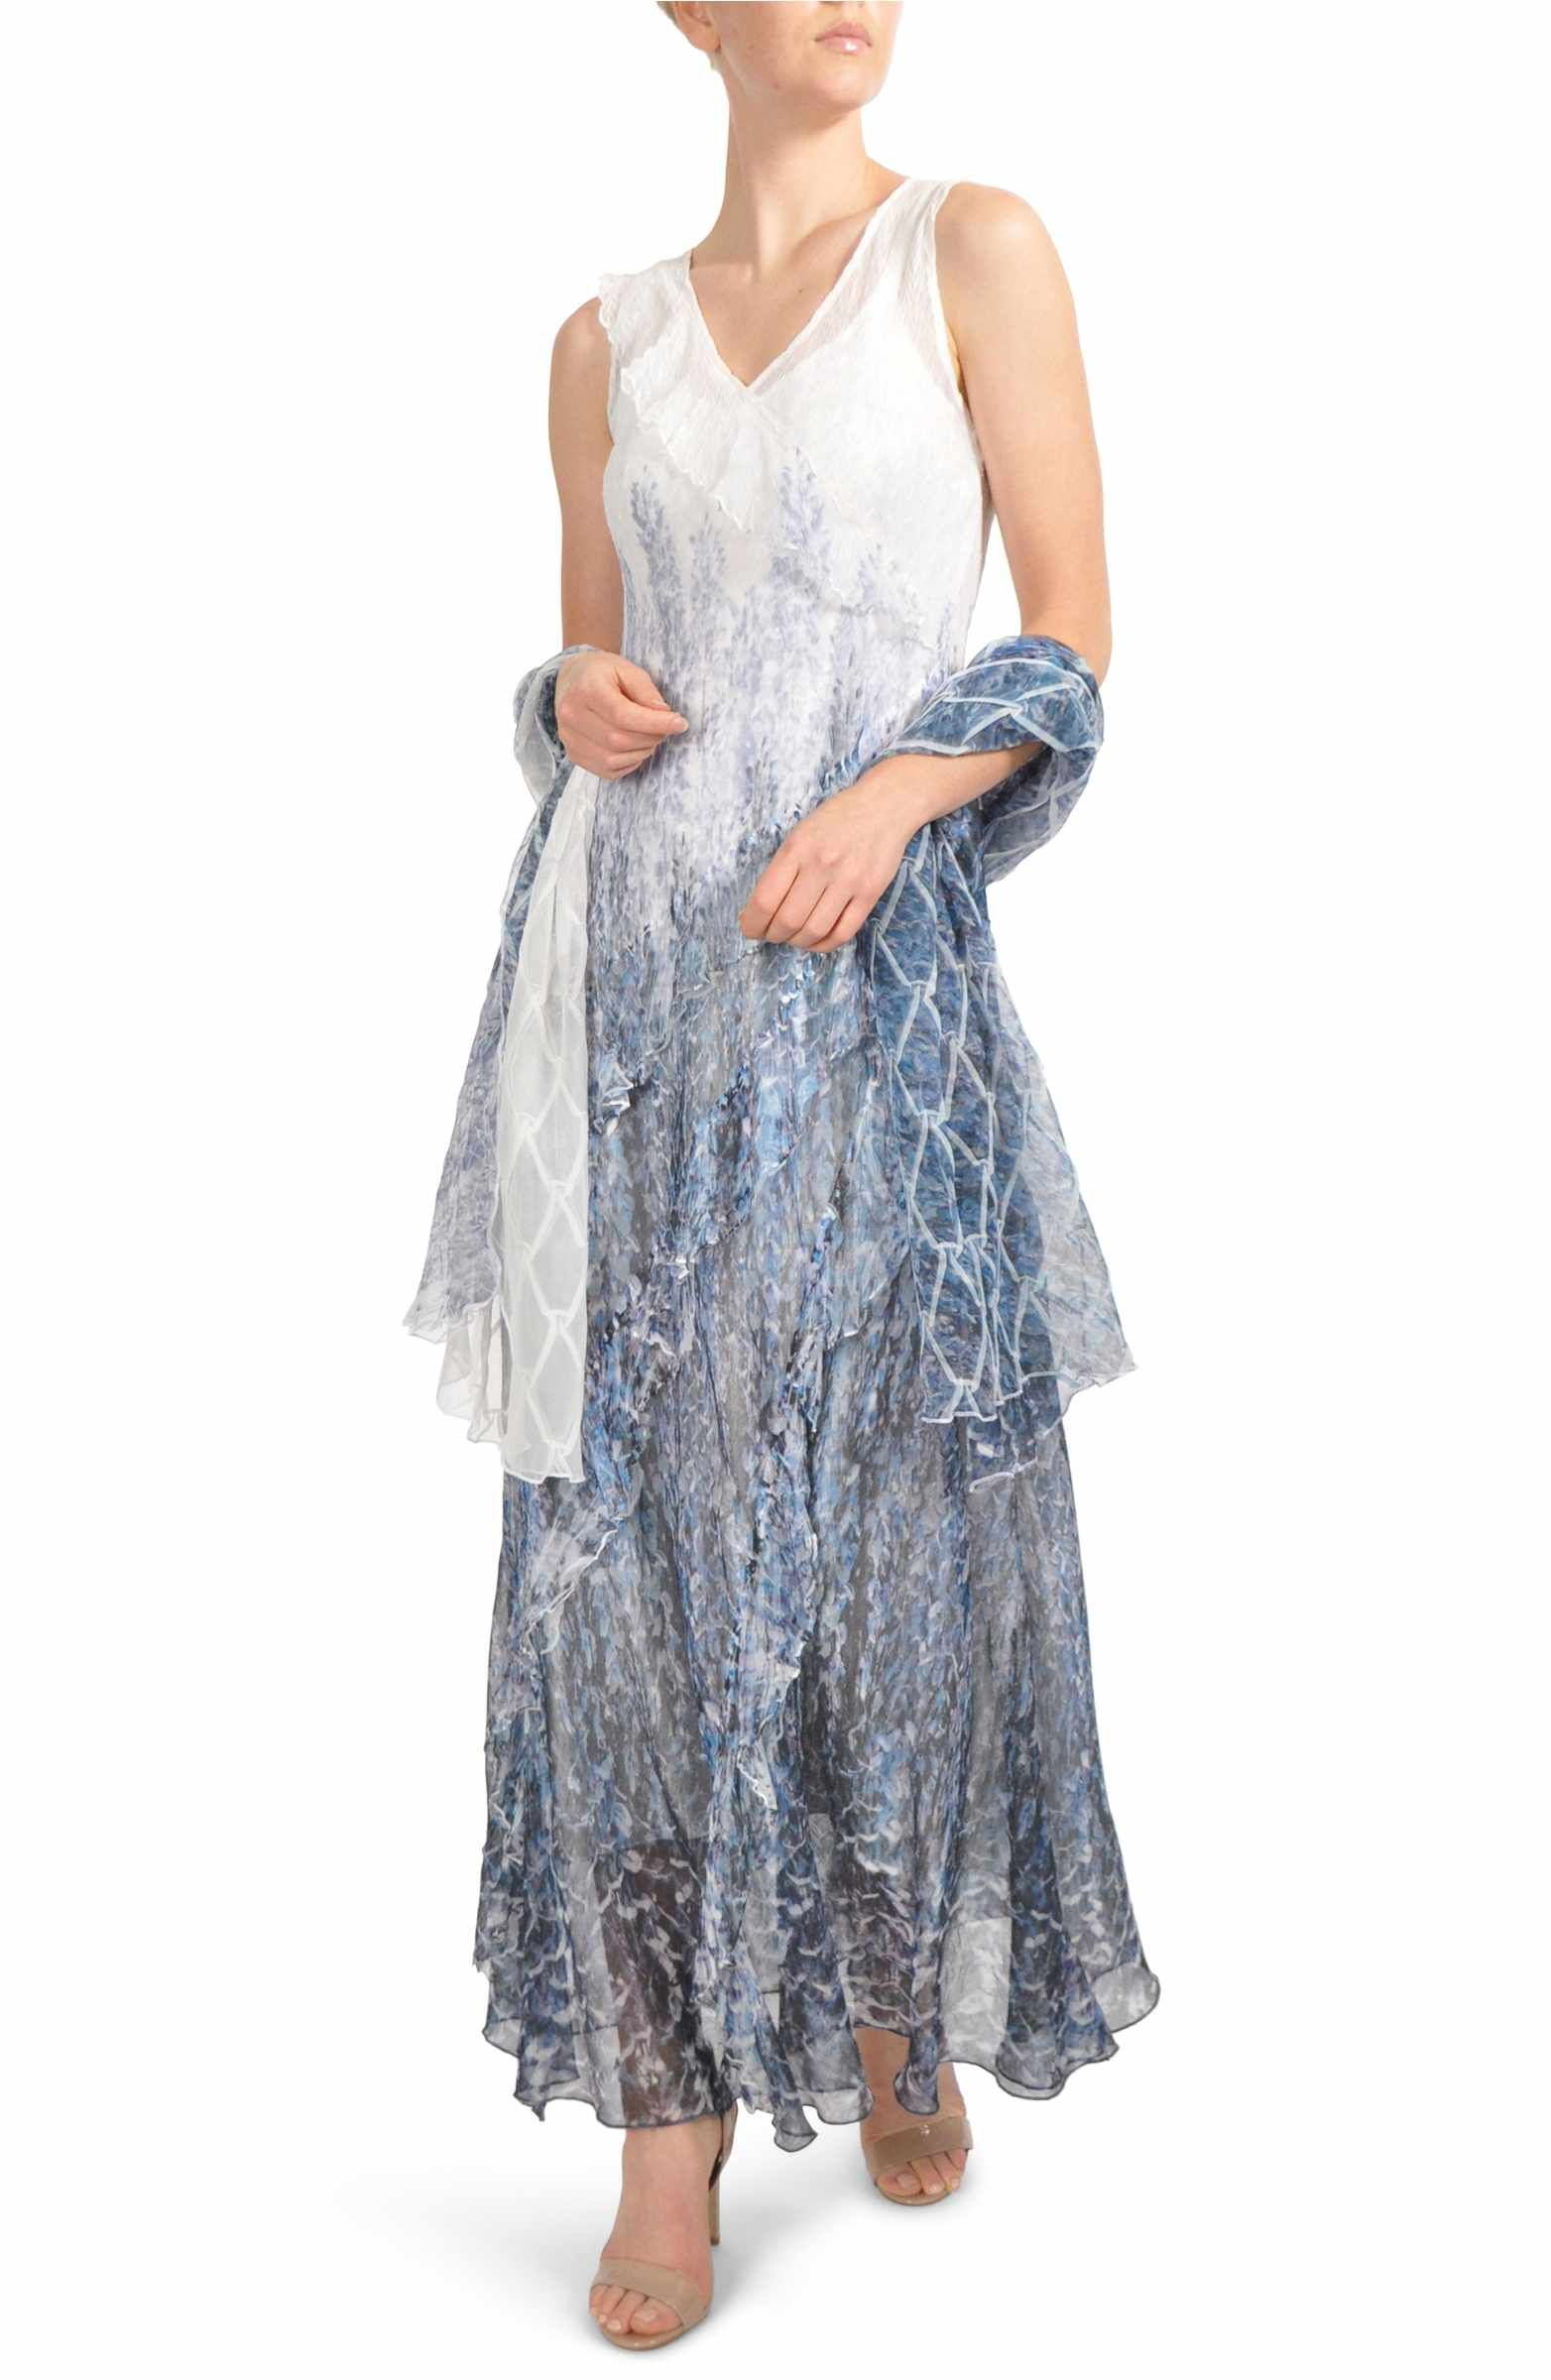 Mother of the bride wedding dresses nordstrom  Main Image  Komarov Ruffled Charmeuse u Chiffon Gown with Wrap